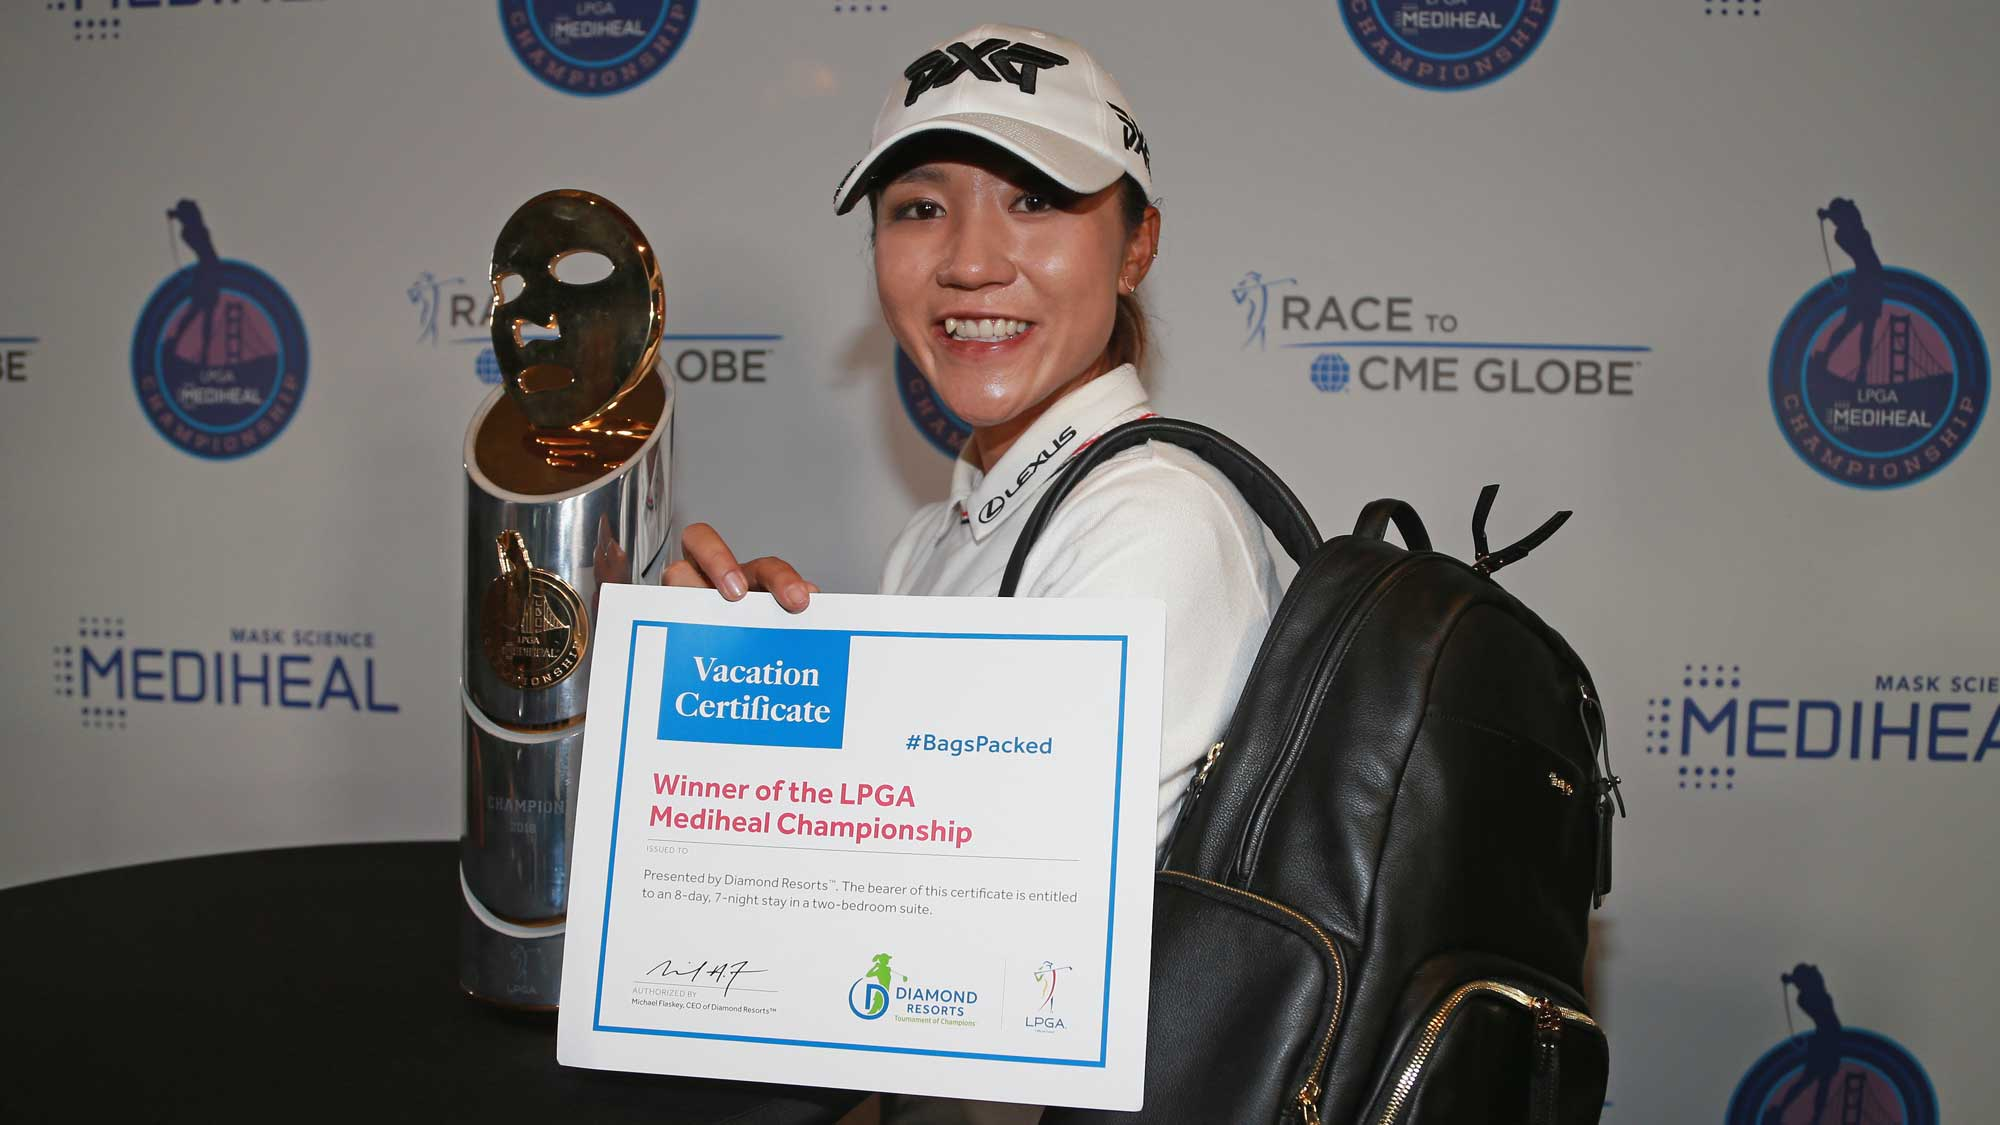 Lydia Ko has her #BagsPacked for the 2019 Diamond Resorts Tournament of Champions after her win at the LPGA MEDIHEAL Championship